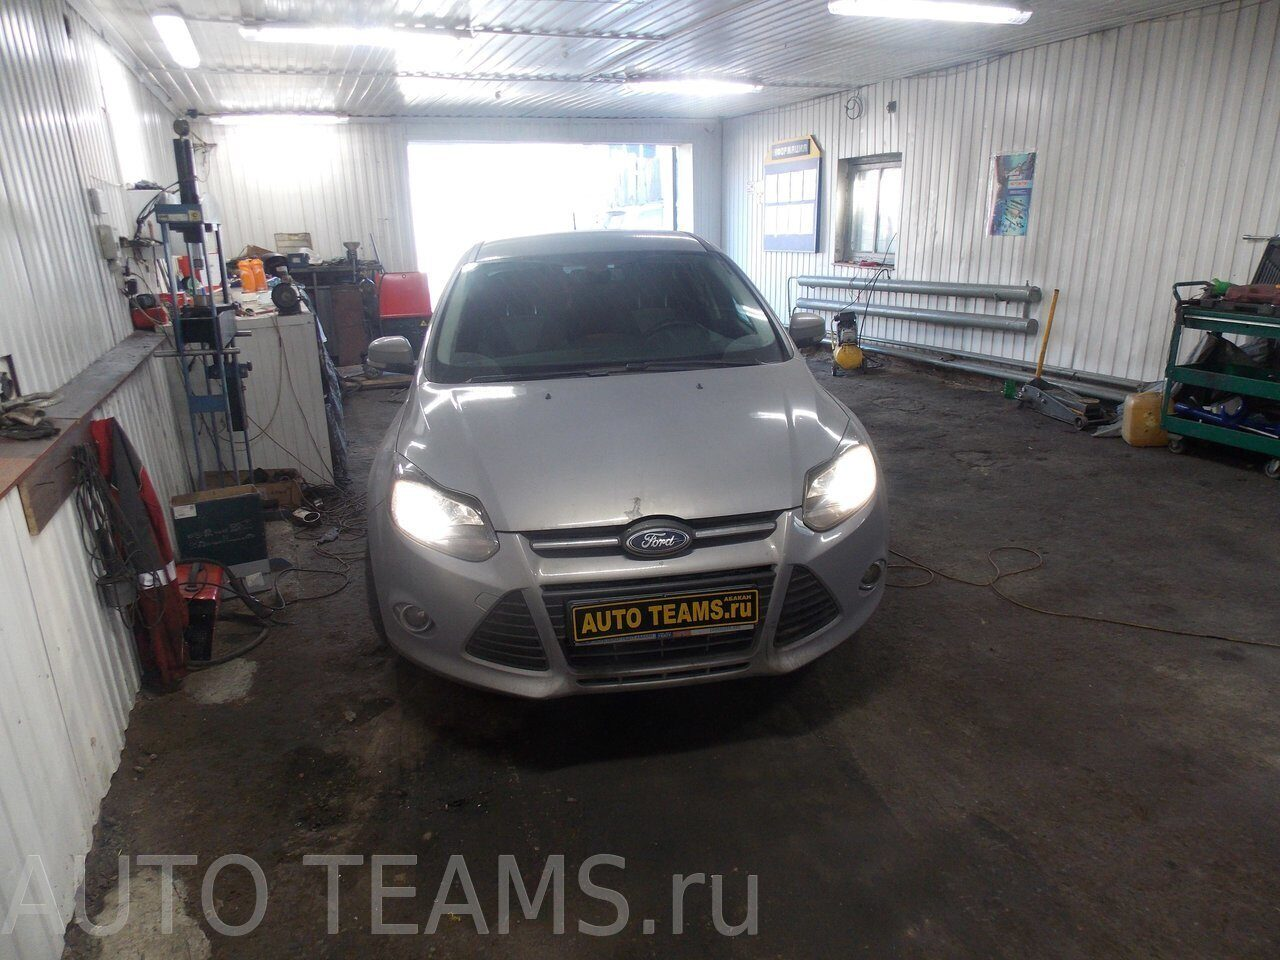 Ford Focus III powershift 1.6л 2014г